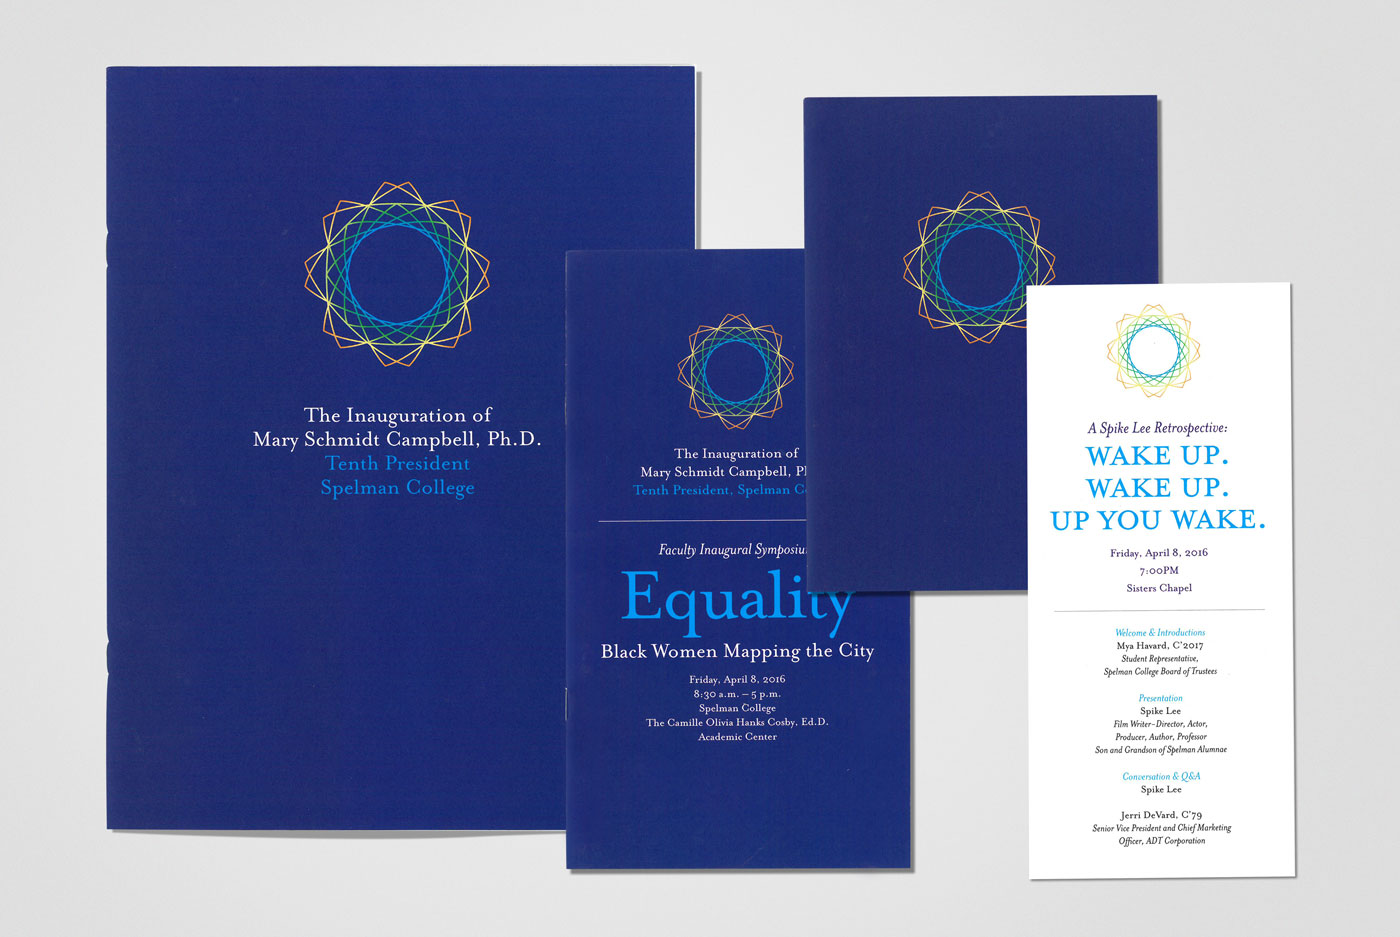 Spelman Presidential Inauguration materials, designed by Drew Sisk